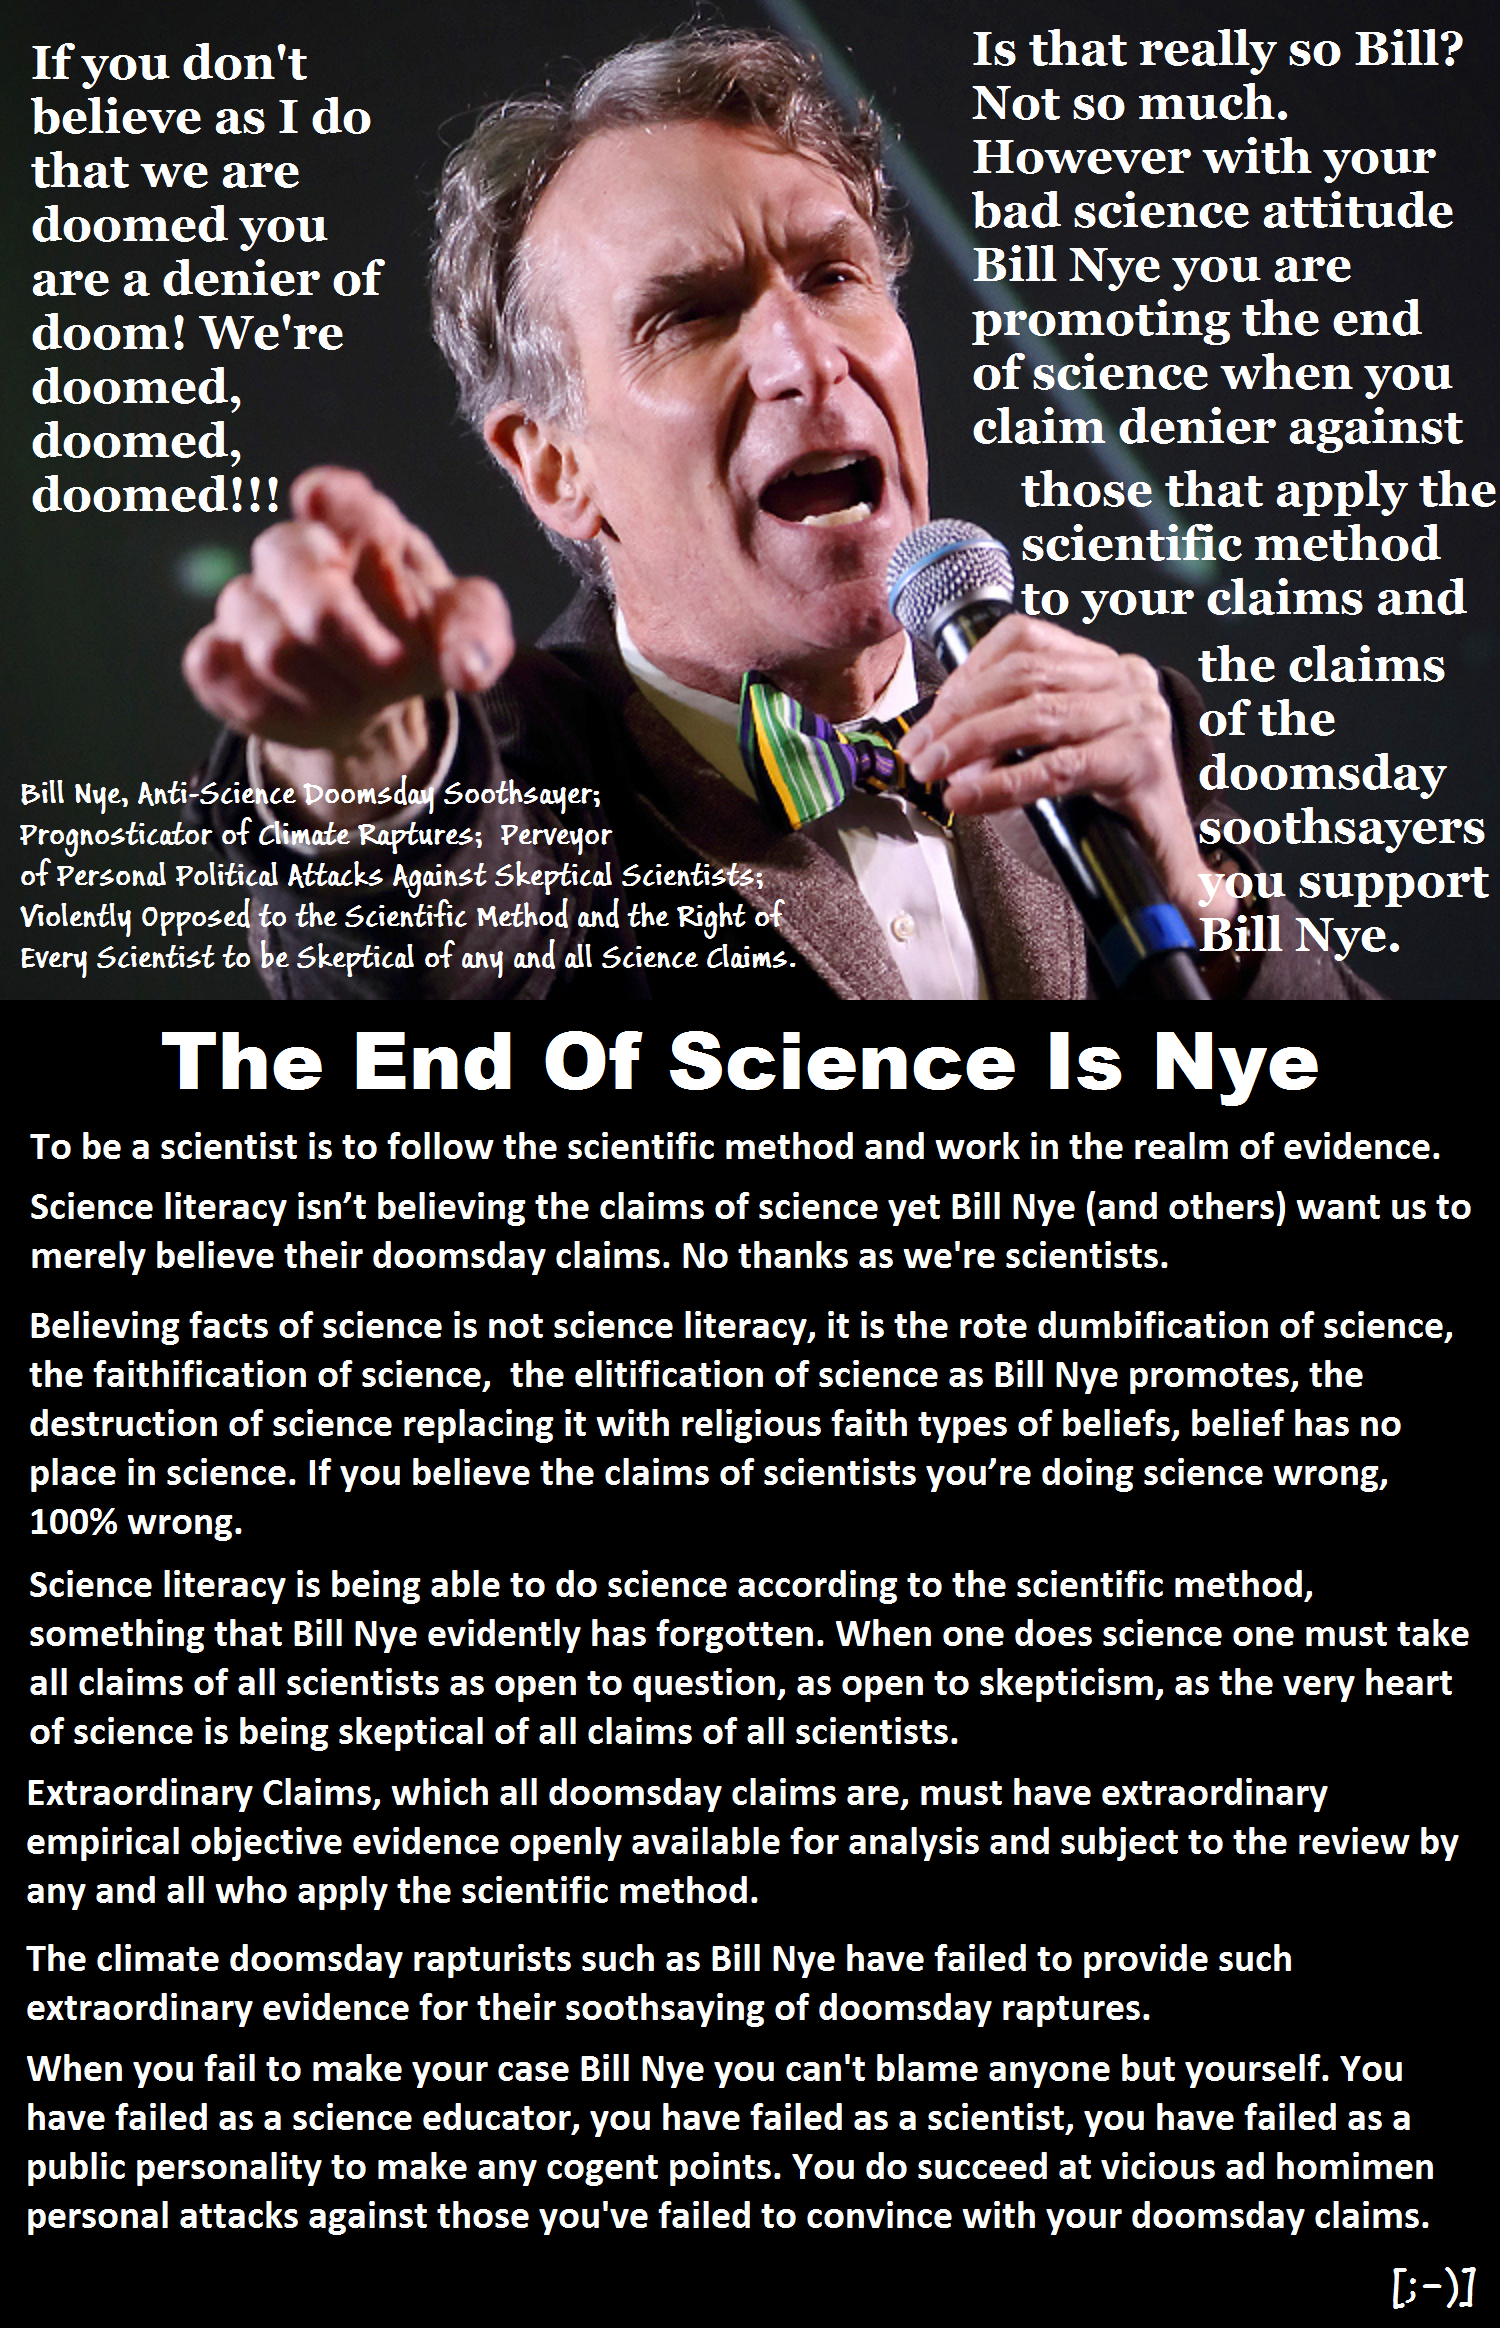 Bill Nye, Anti-Science Doomsday Soothsayer v001